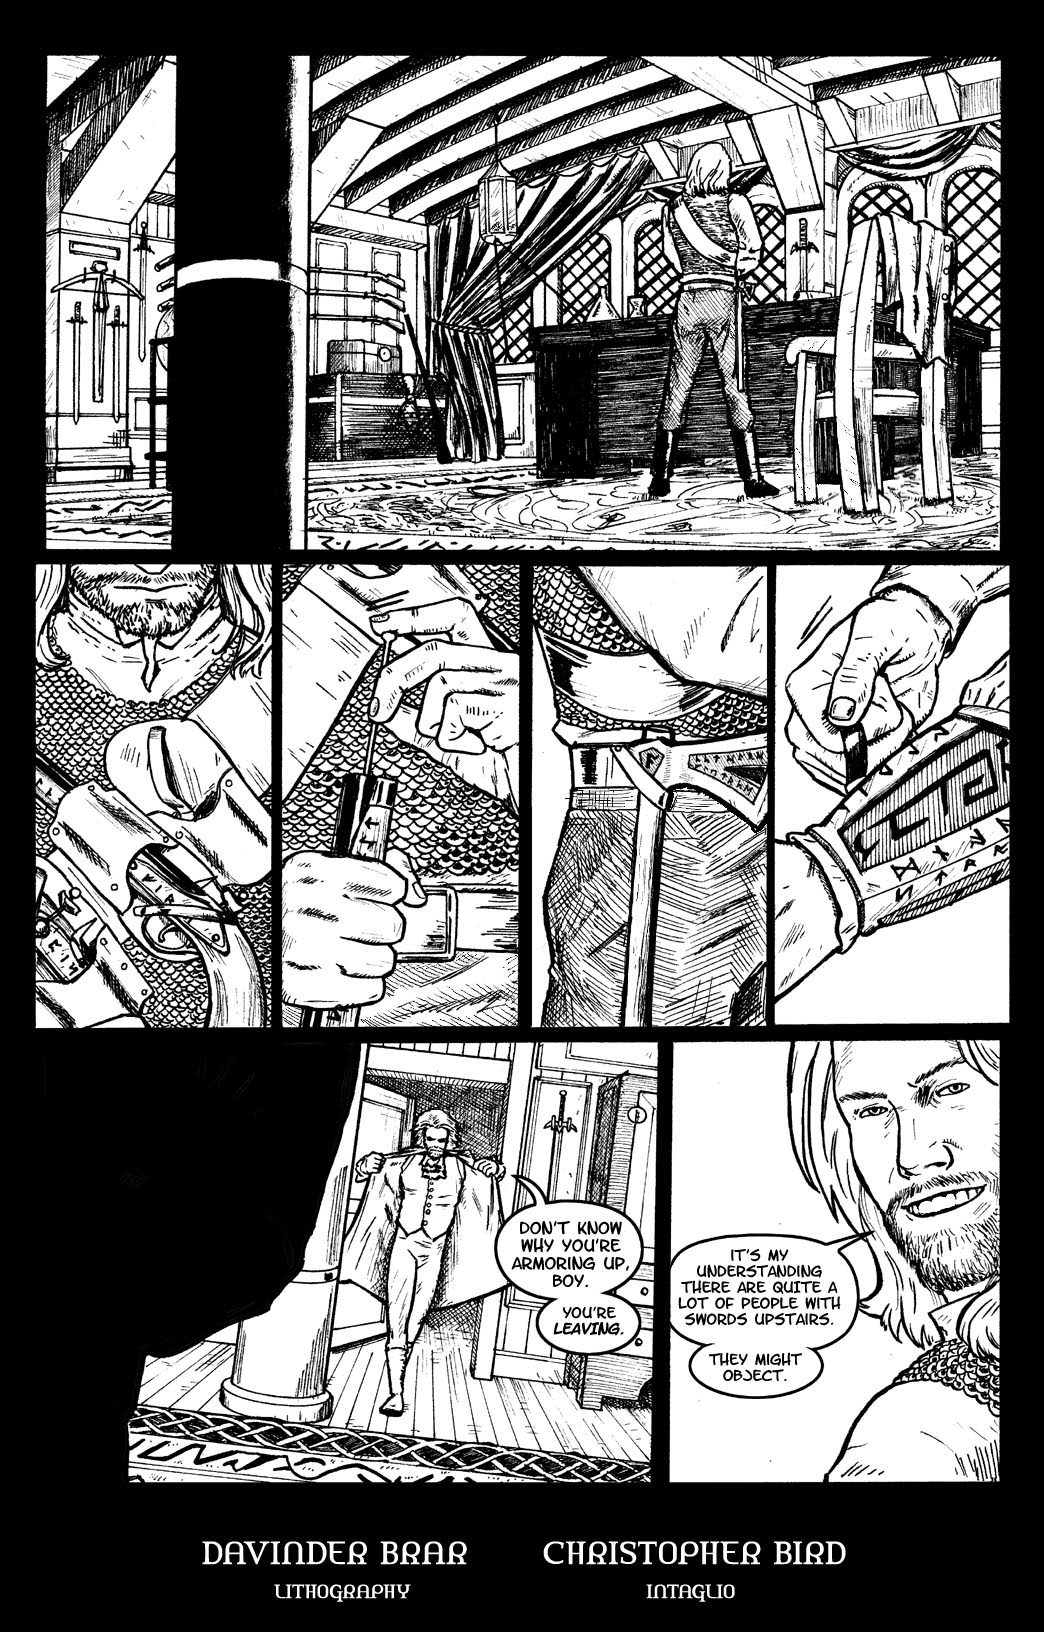 Book 1, page 10